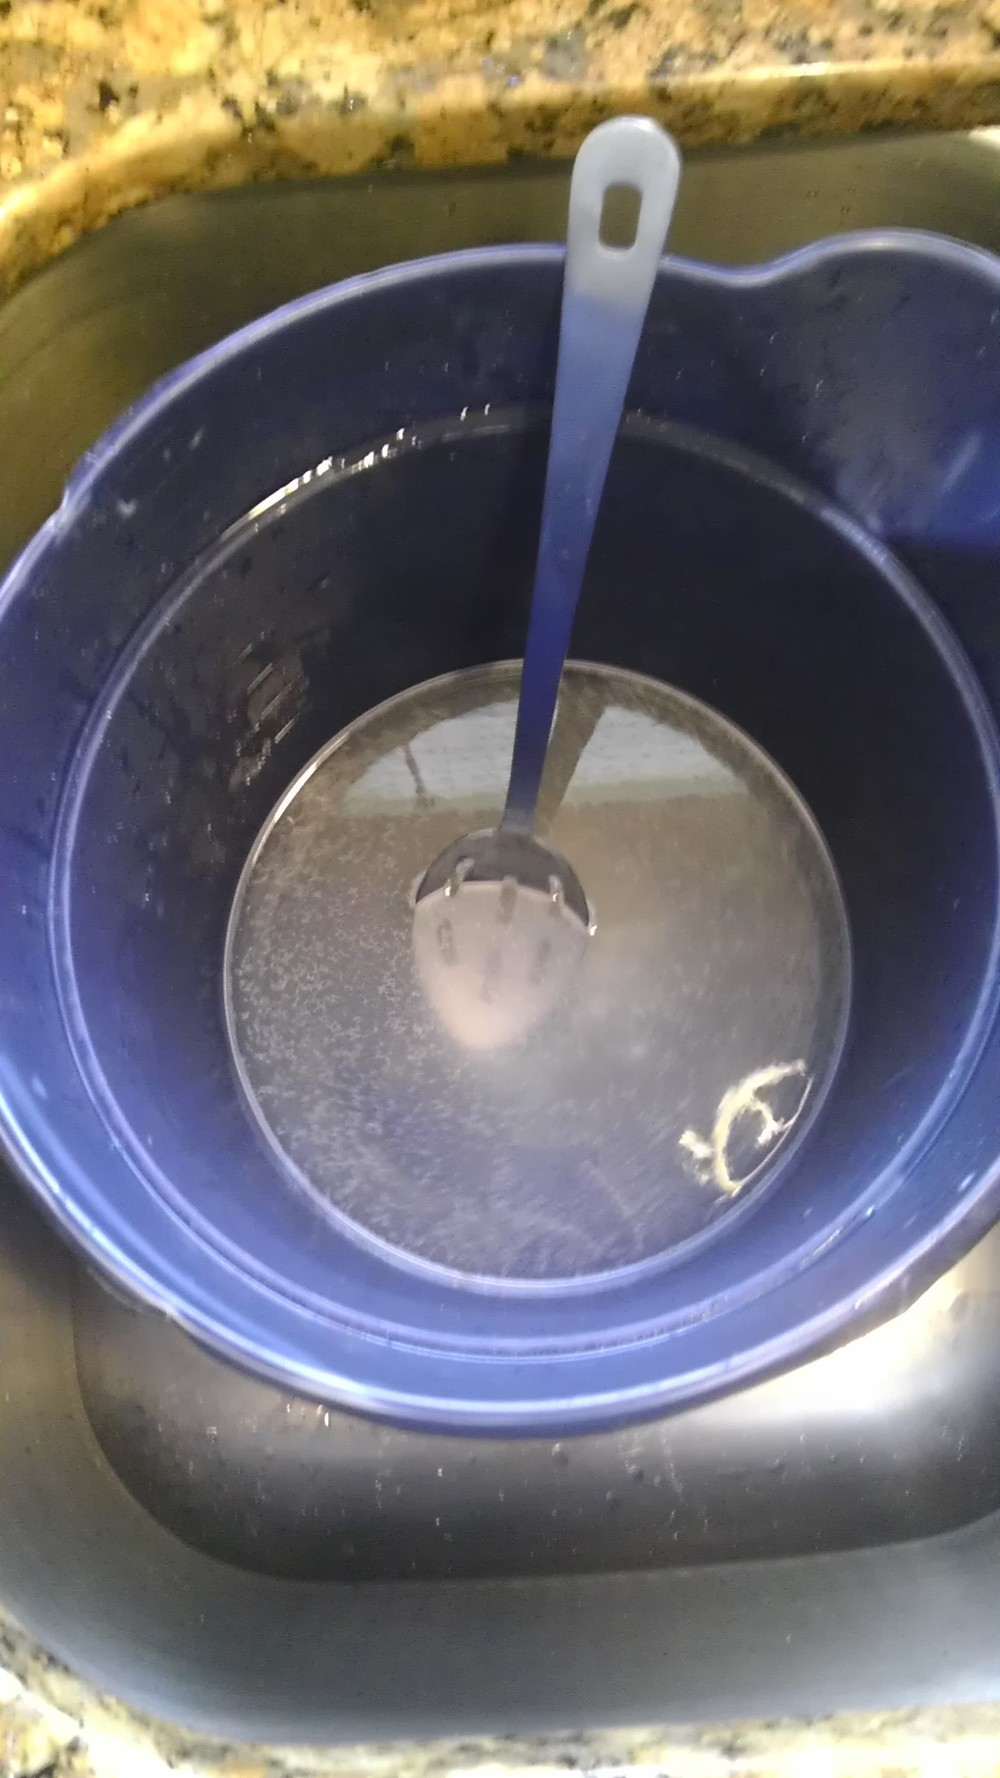 Dissolve Borax and Super Washing Soda in warm water